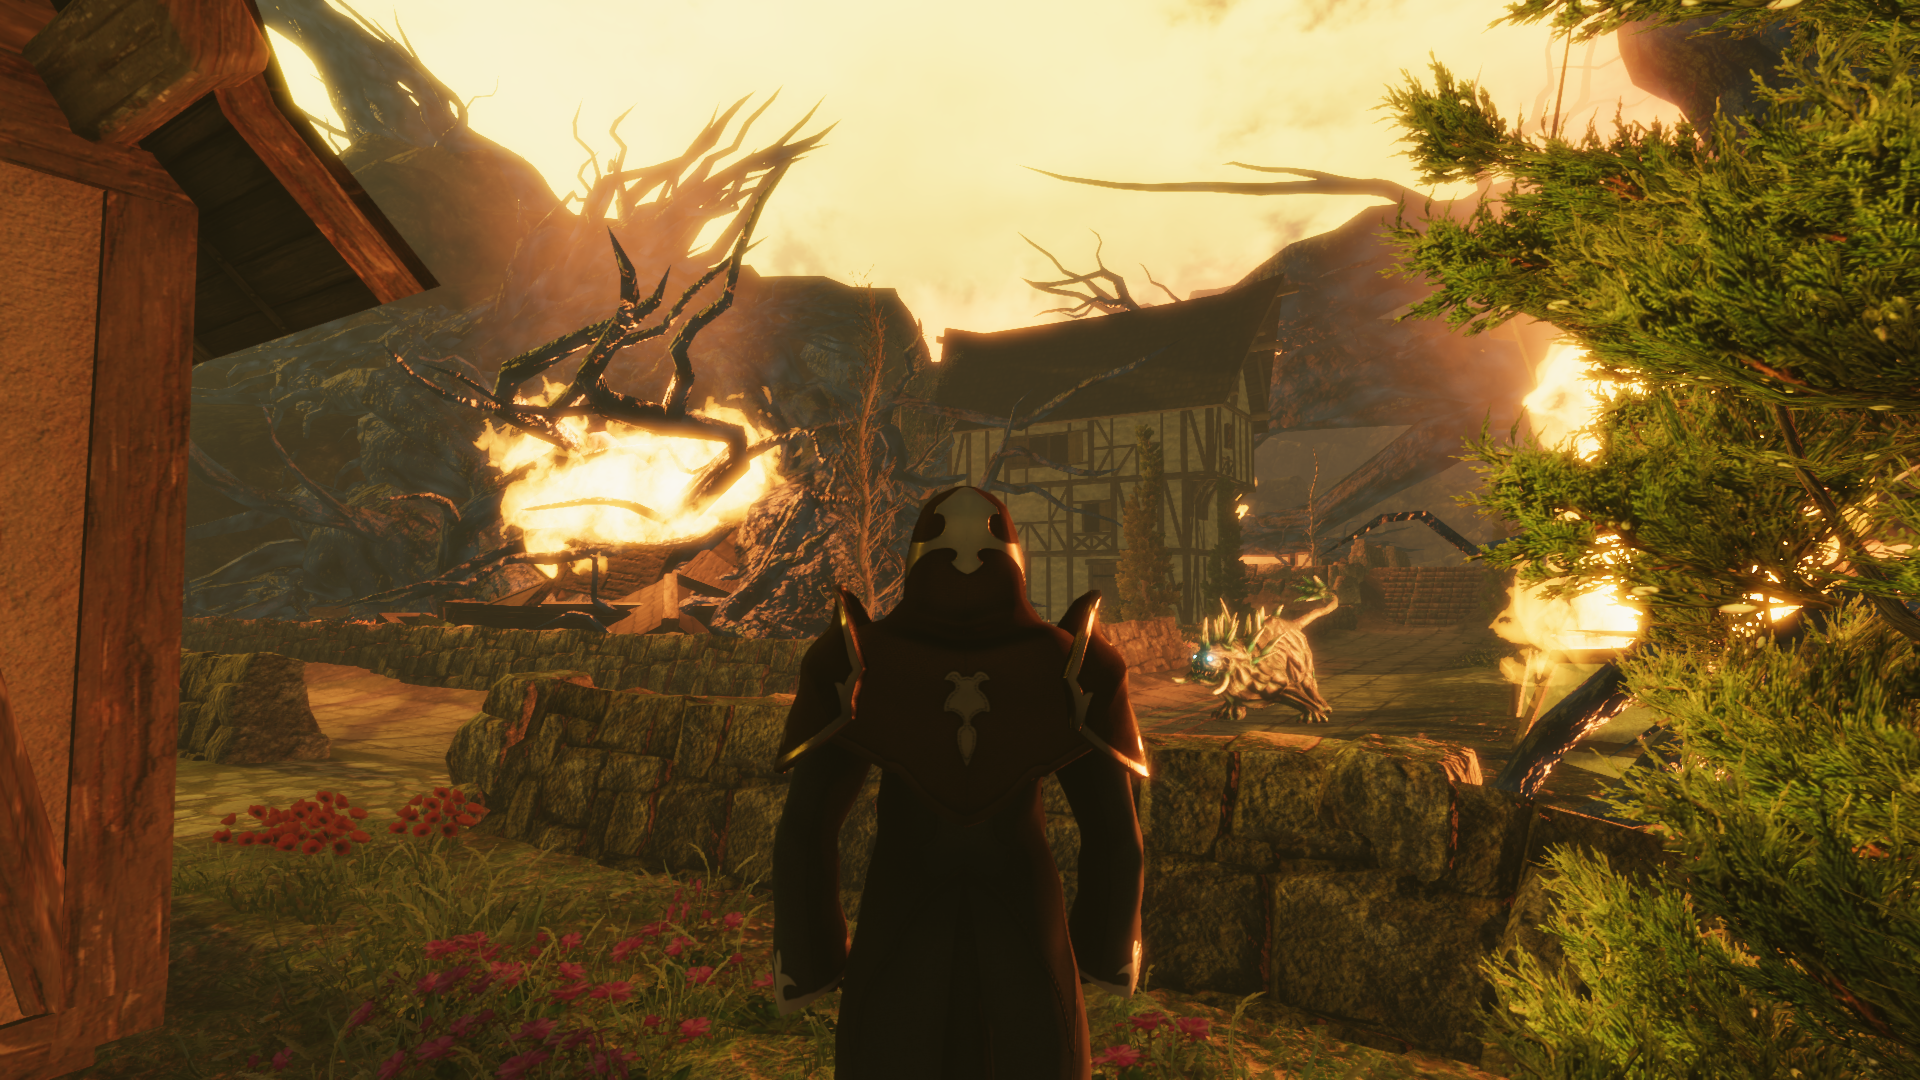 –Visit a beautiful, massive world with modern 3D environments to discover, explore, and conquer.  –Fend off free-roaming enemies with a wide variety of movement patterns, behaviors and habitats.  –Explore loads of side quests, optional bosses/areas, and minigames!